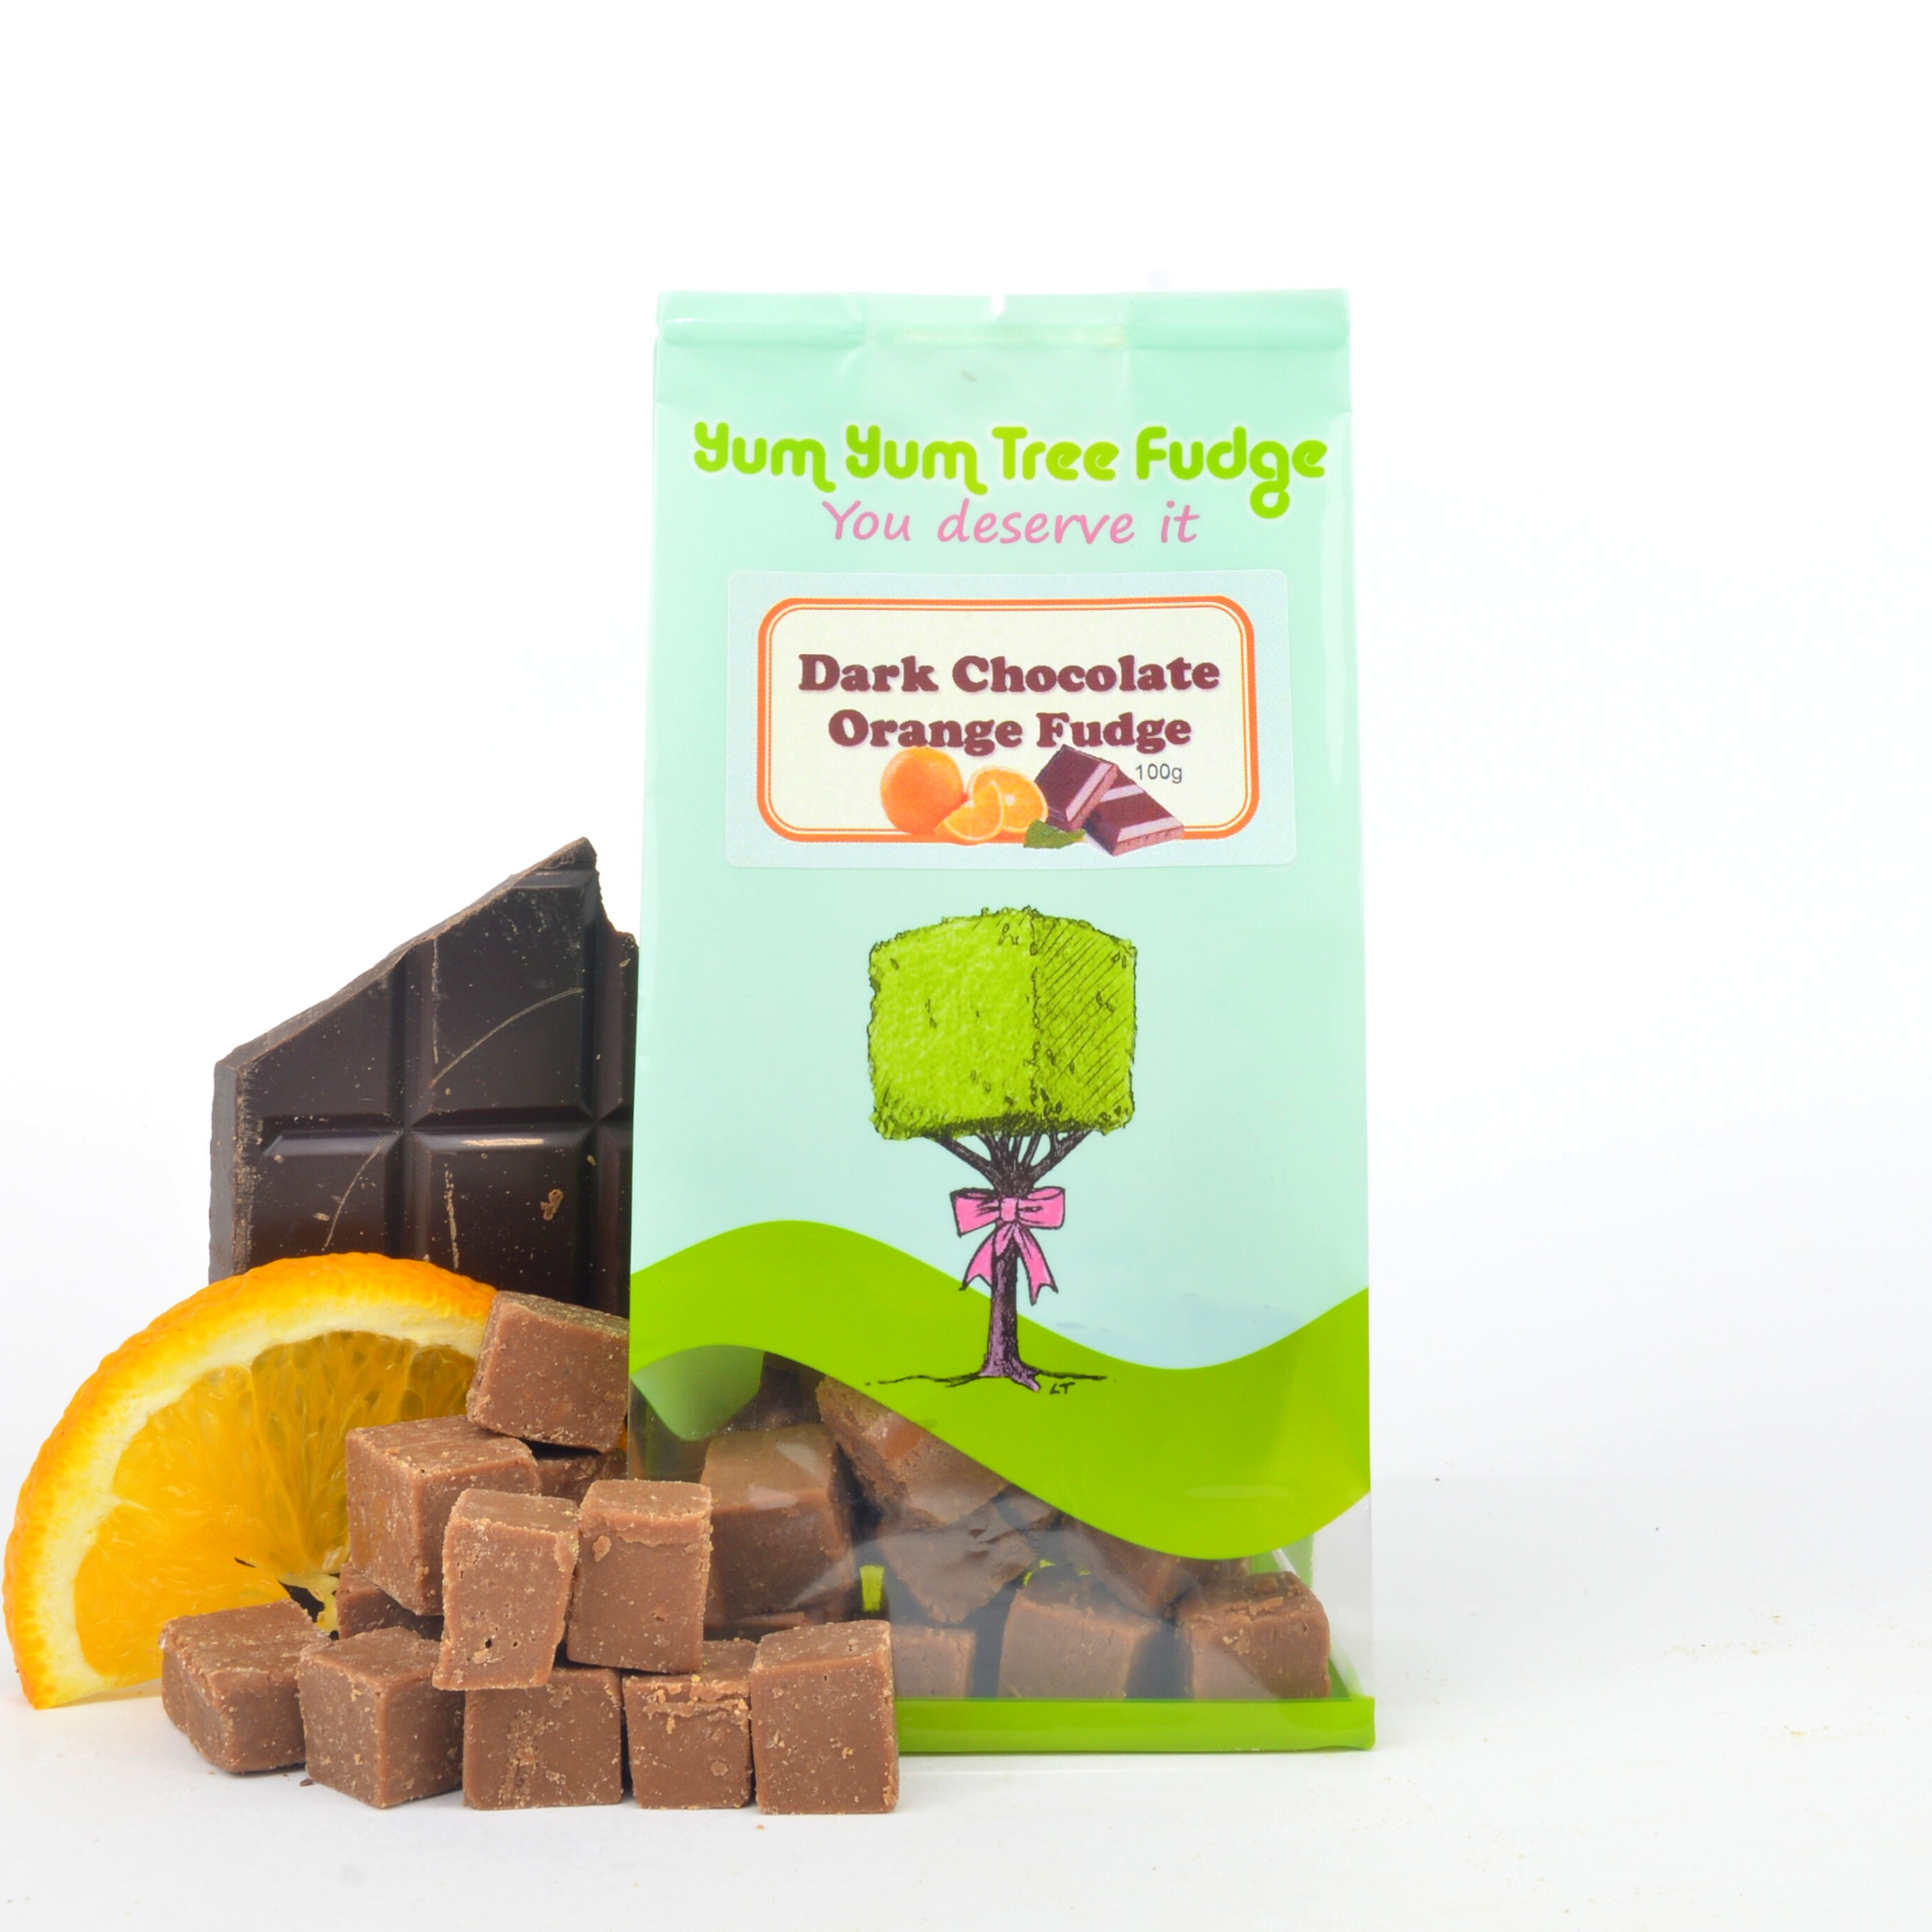 Dark Chocolate Orange Fudge 100g